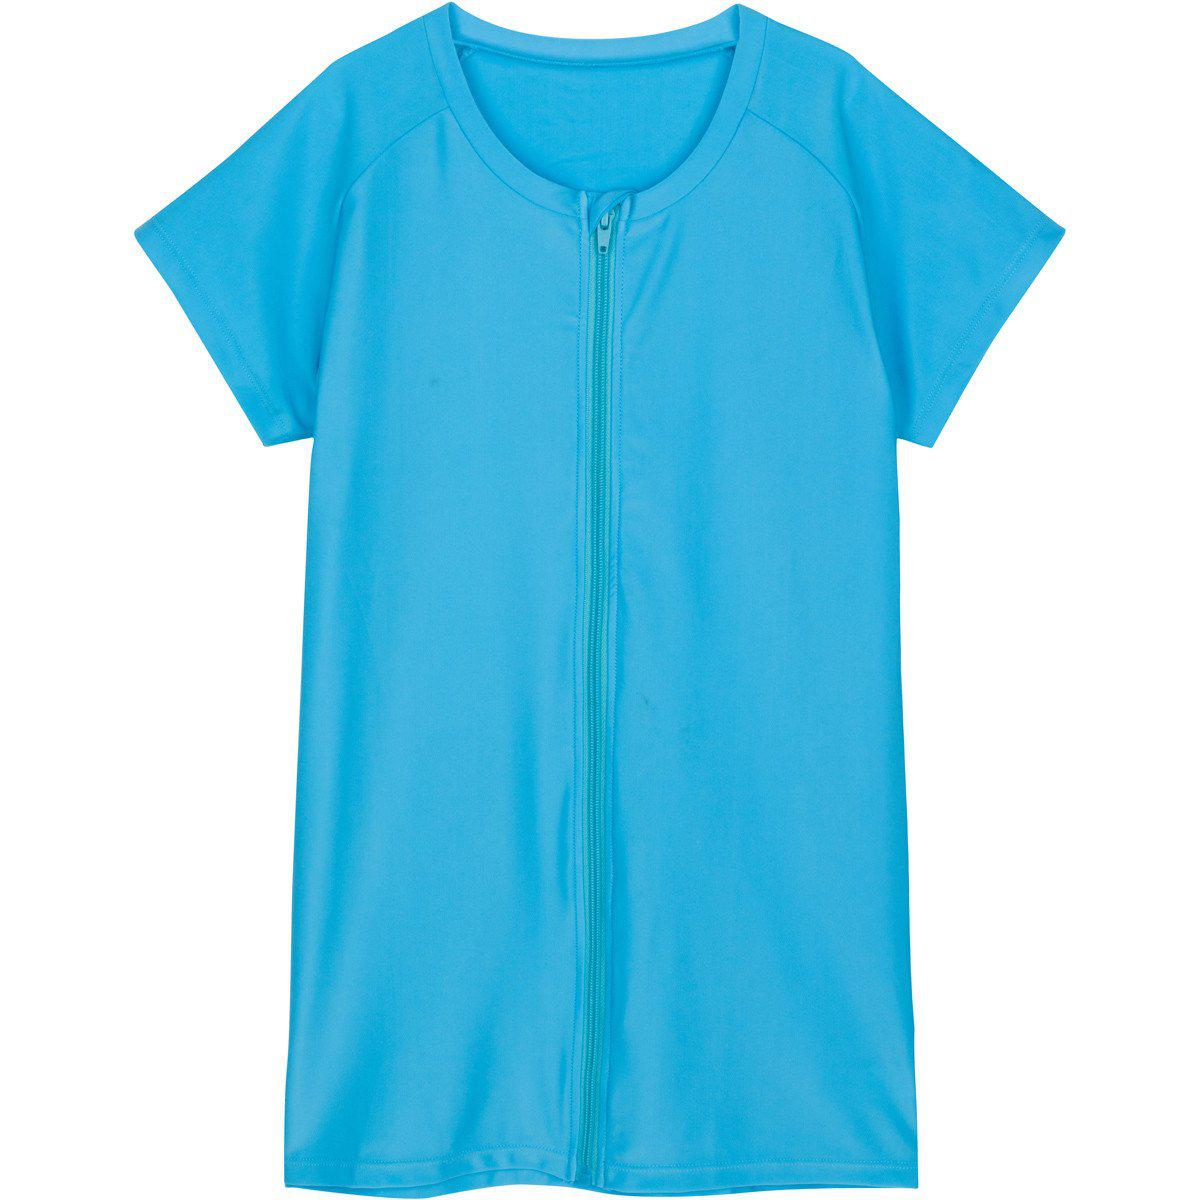 plus size rash guard shirt womens swimzip turquoise